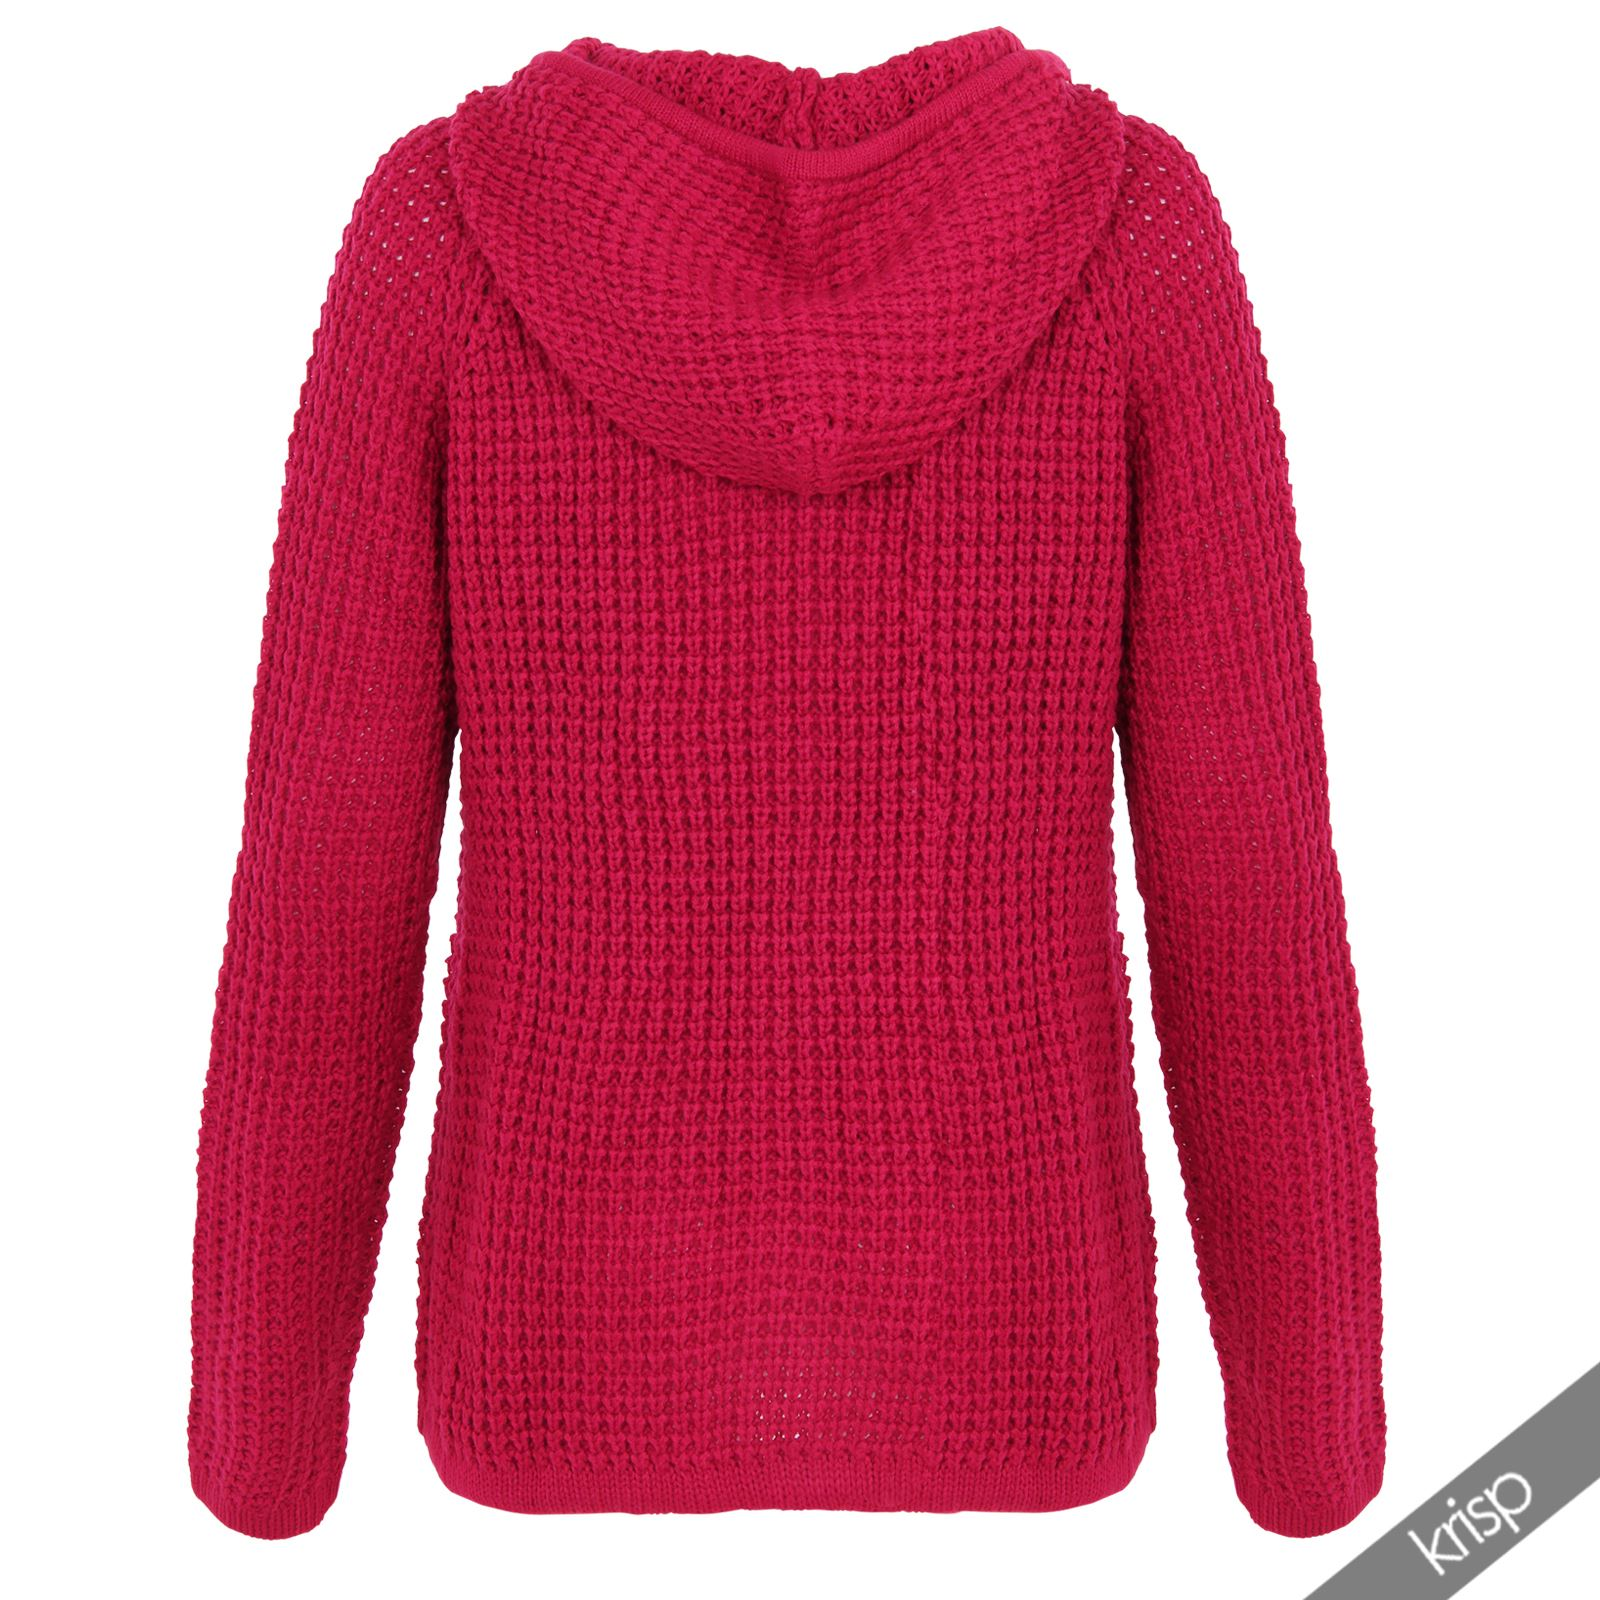 Shop THE LIMITED's cute sweaters and stylish cardigans. Several cuts and styles New Arrivals · Petite Collection · Free Shipping All Orders · Classic Office Essentials19,+ followers on Twitter.